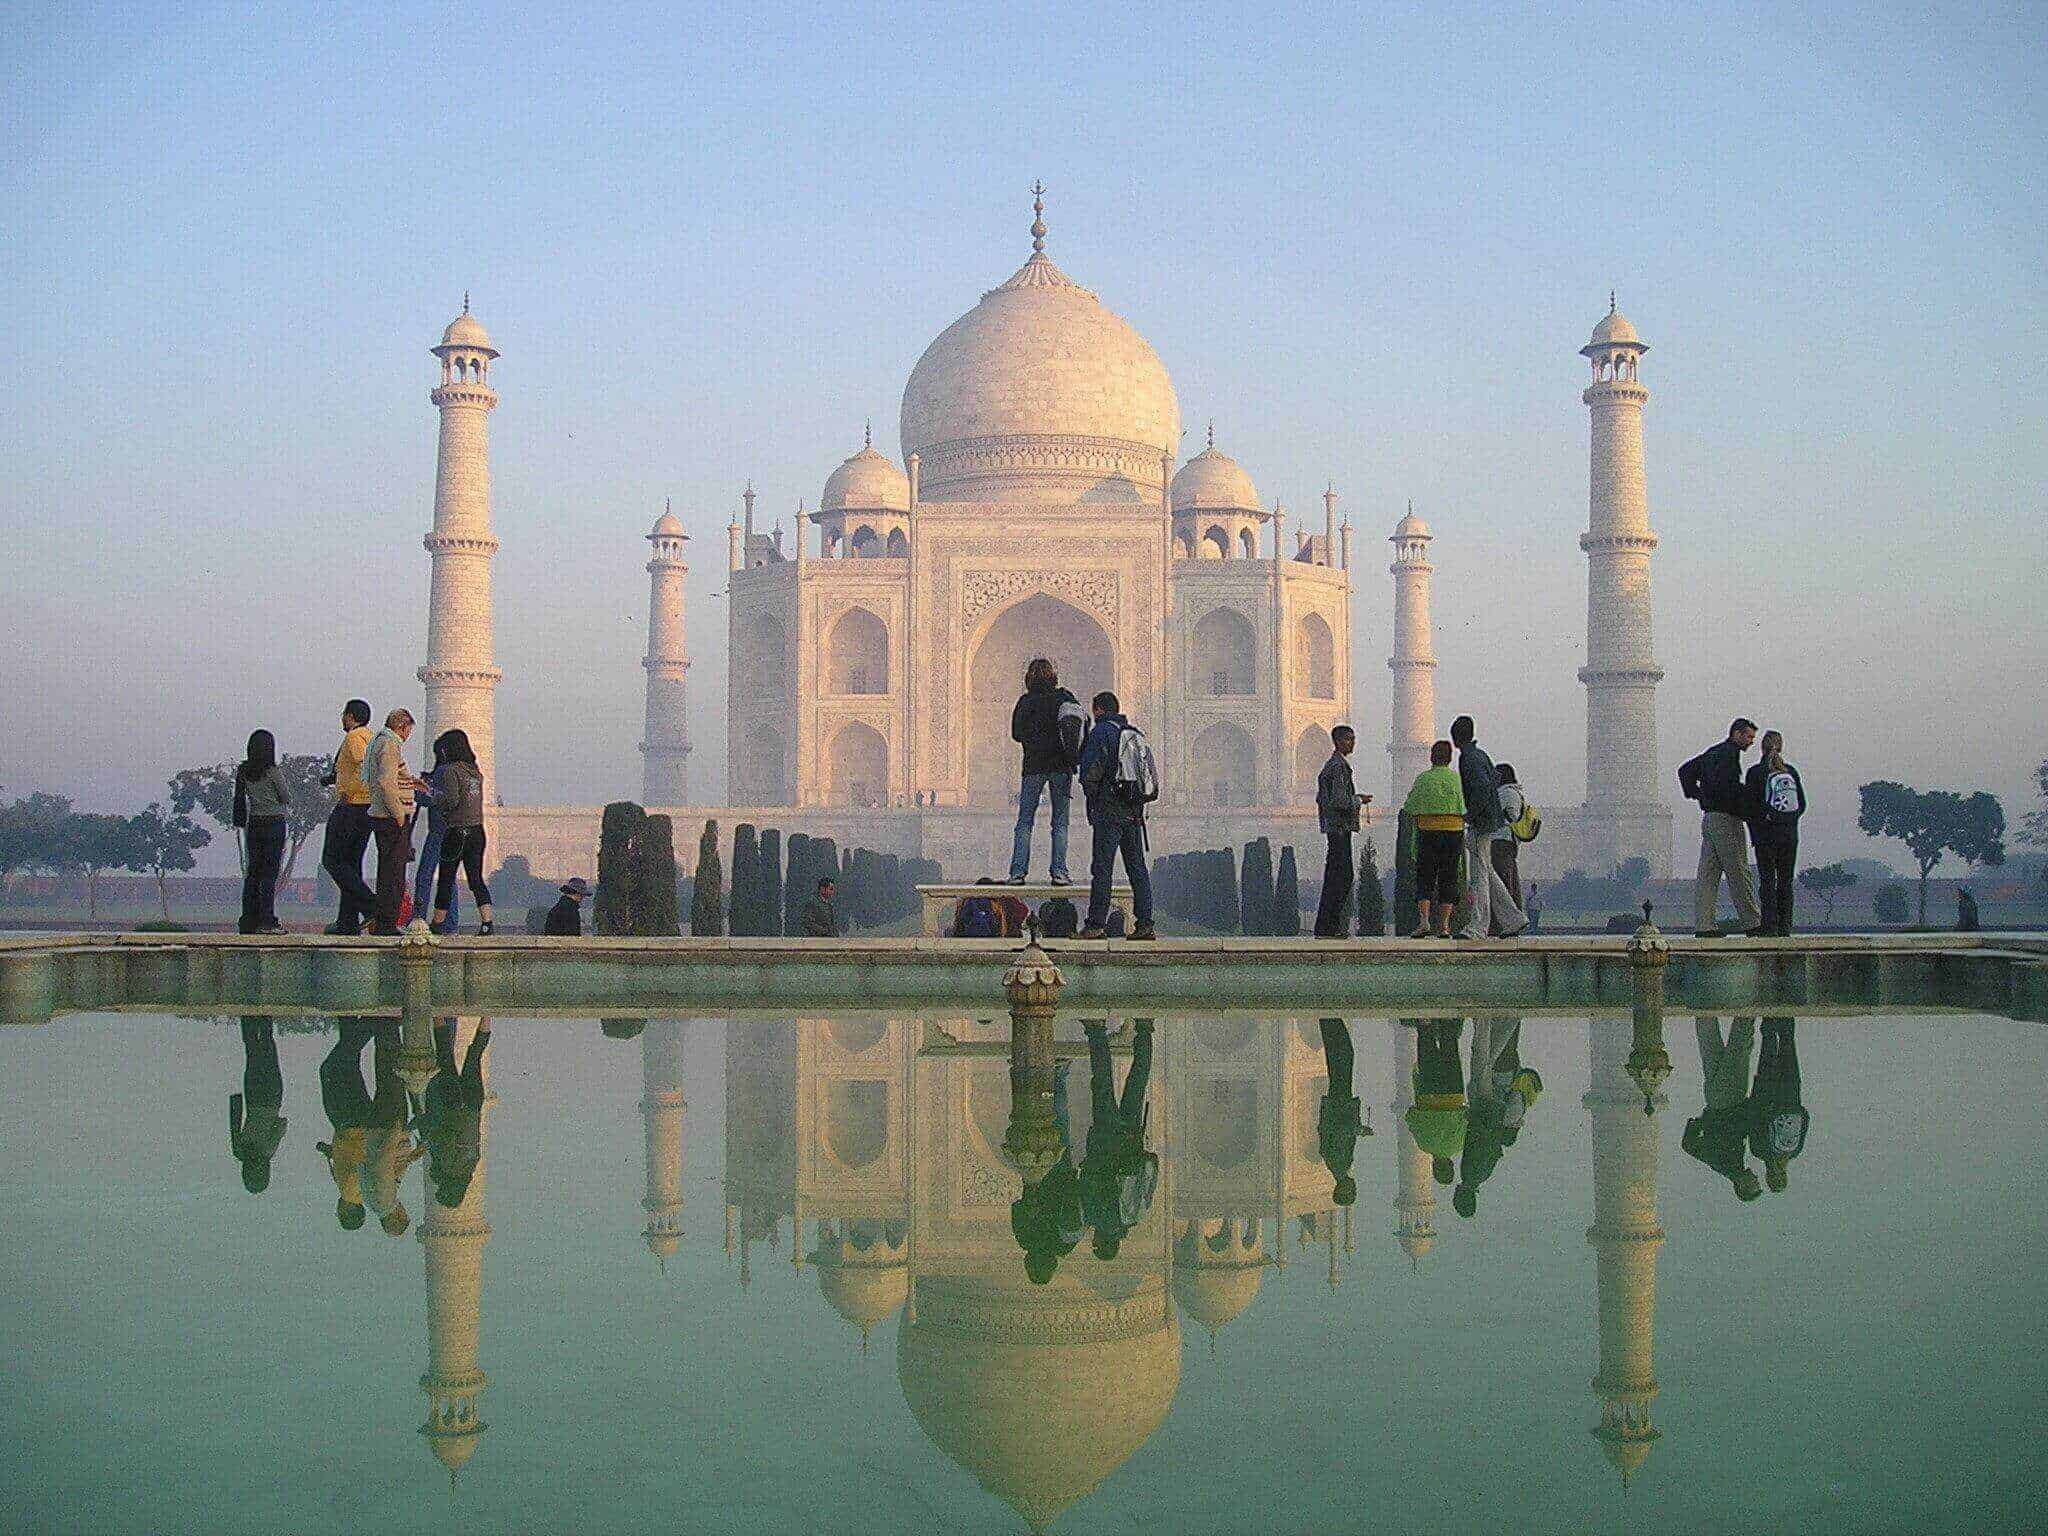 Taj-Mahal-Pics-Taj-Mahal-Photo